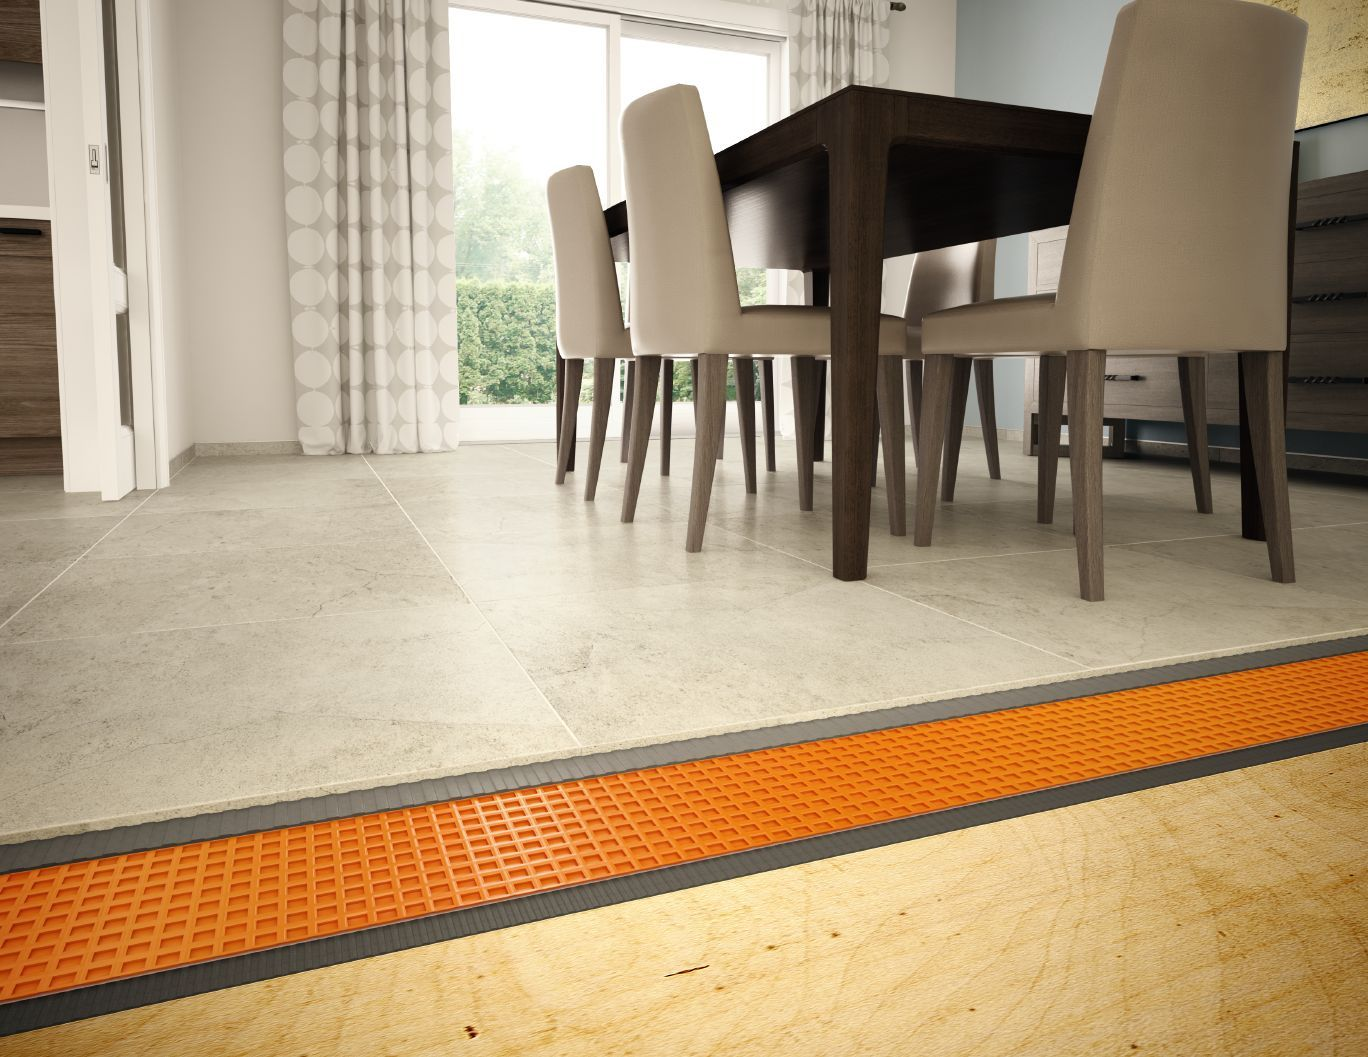 Schluter Ditra Ditra Xl System To Use Over Concrete Or Wood Floor To Prevent Cracks In Tile Home Renovation House Wood Floors